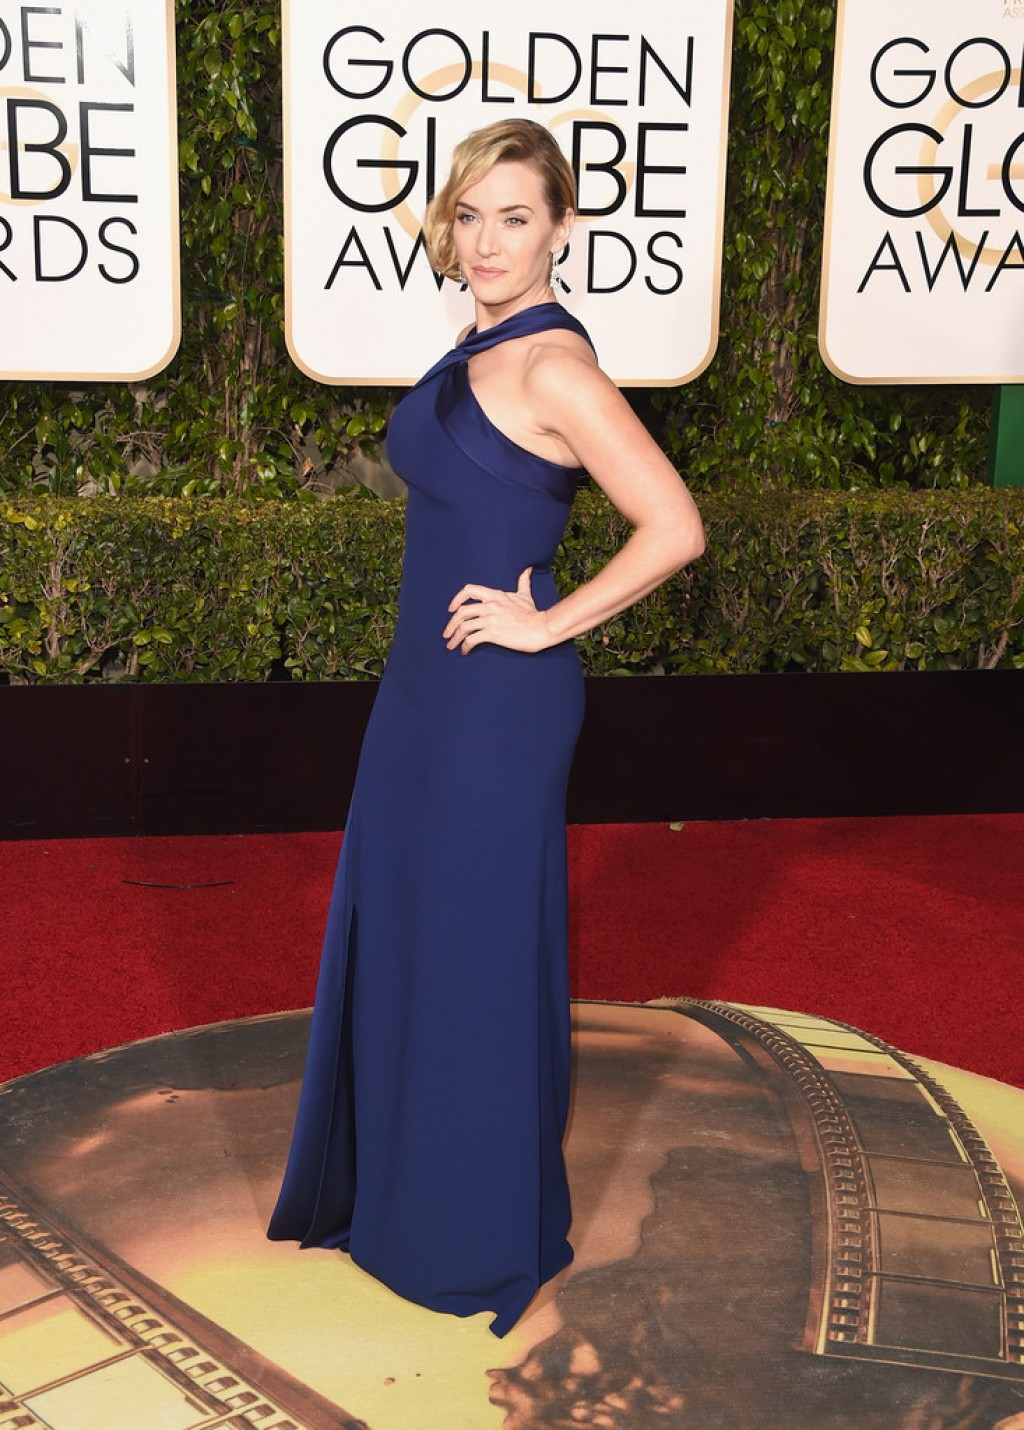 Kate-Winslet-2016-Golden-Globe-Awards-Ralph-Lauren-dress-1024x1430